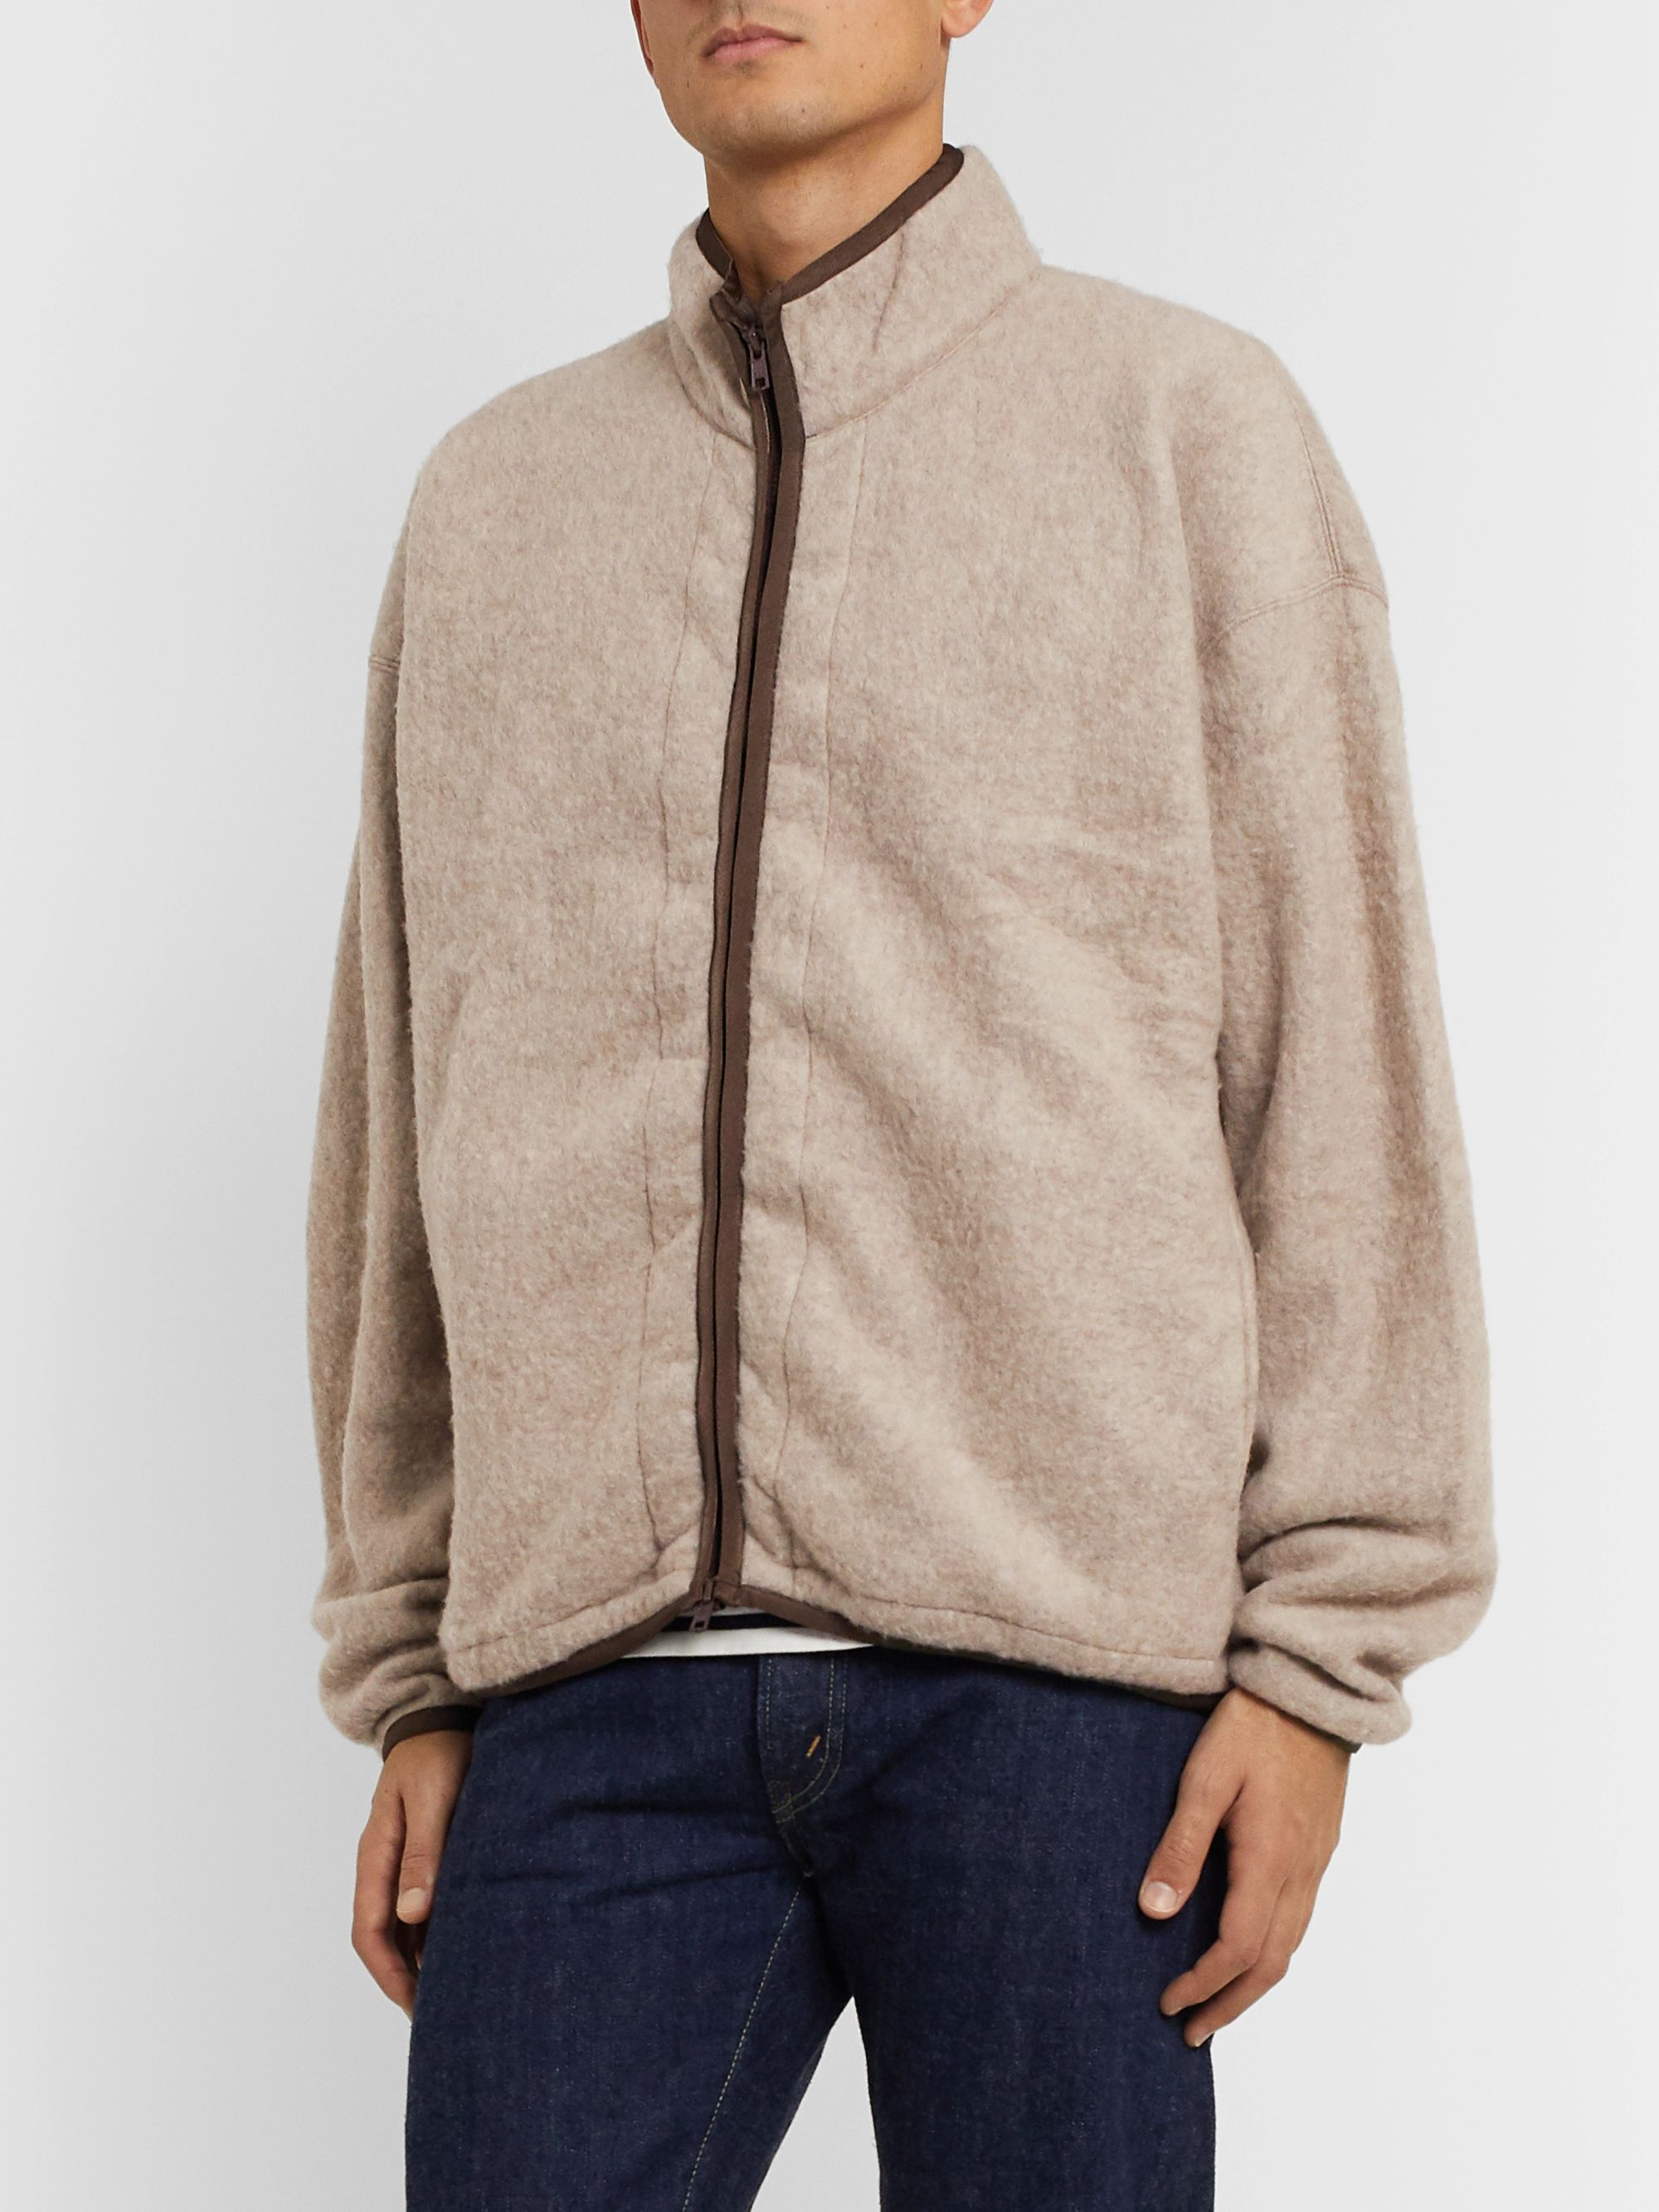 Remi Relief Wool-Blend Fleece Zip-Up Sweatshirt